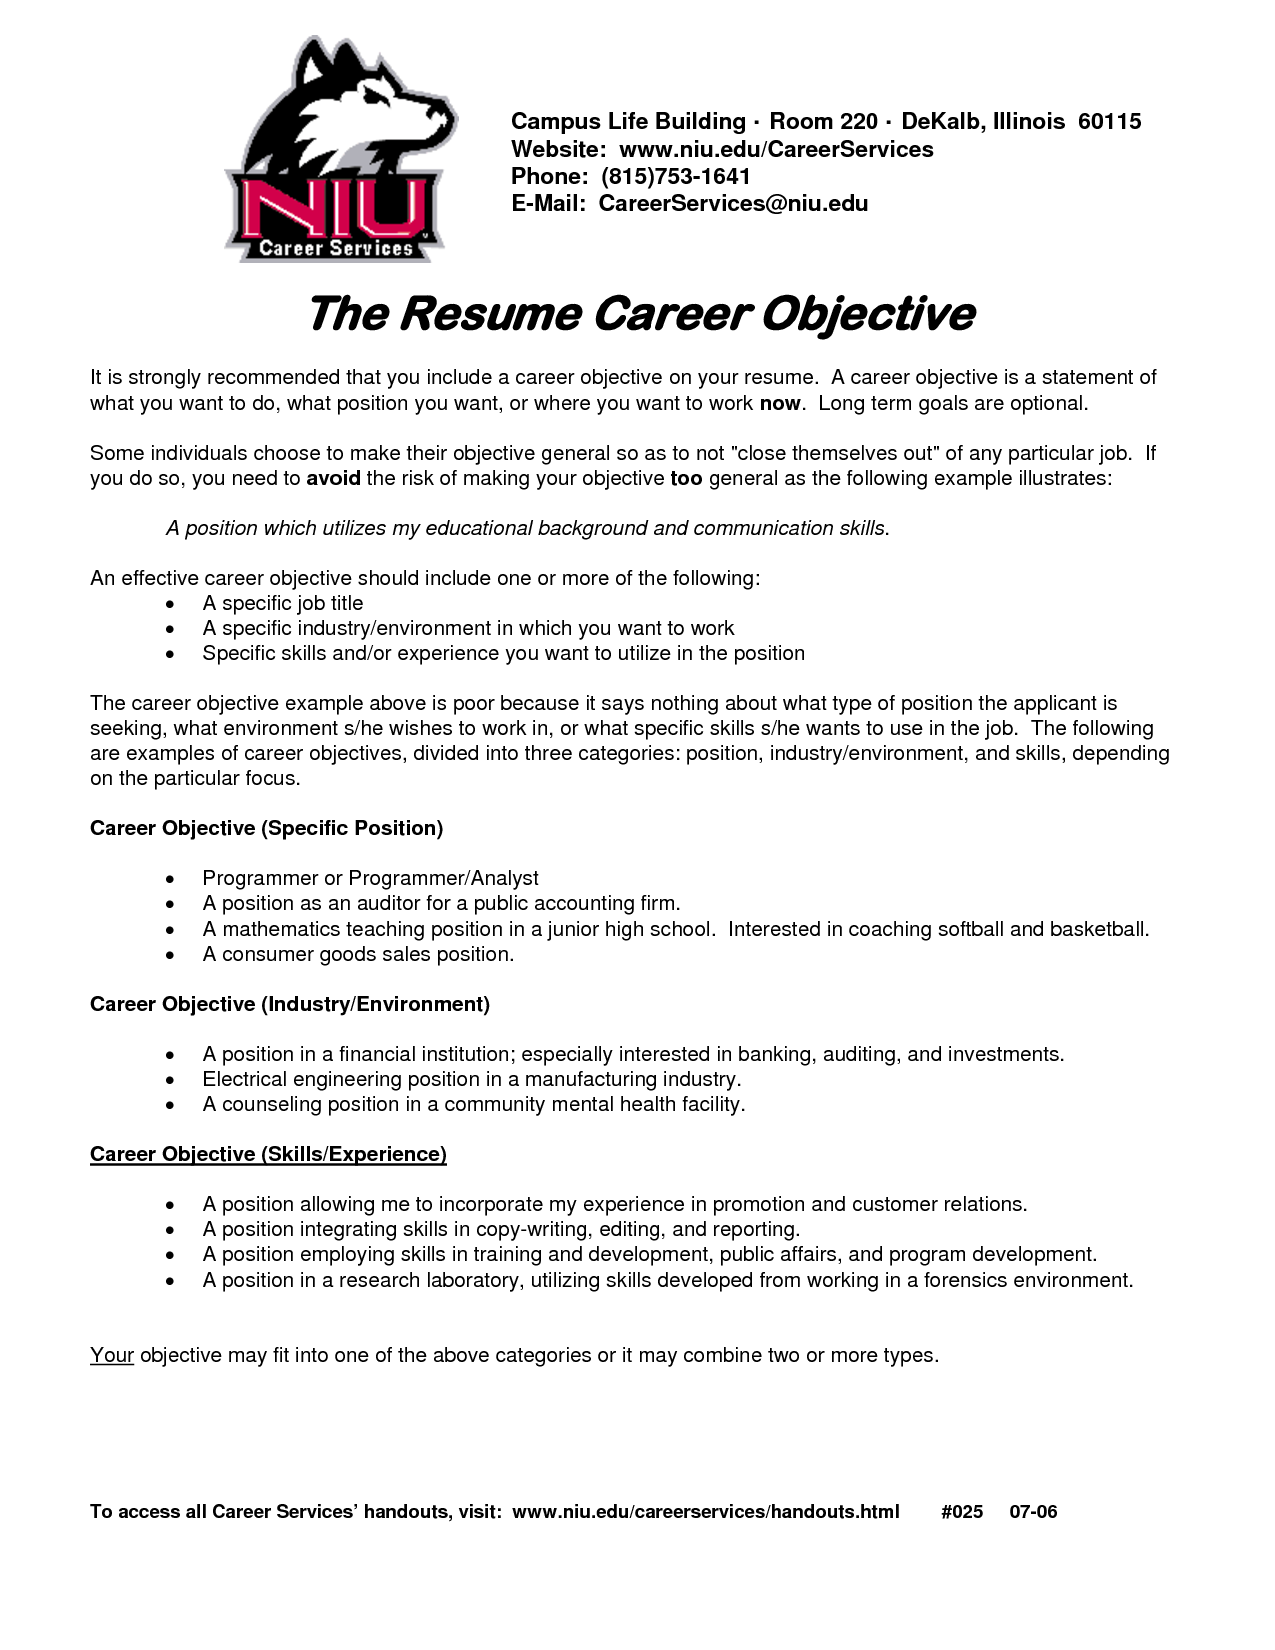 Good Good Work Objective For Resume Sample Job Objective Resume Writing Career  Objective Statement . Regarding What Is Job Objective